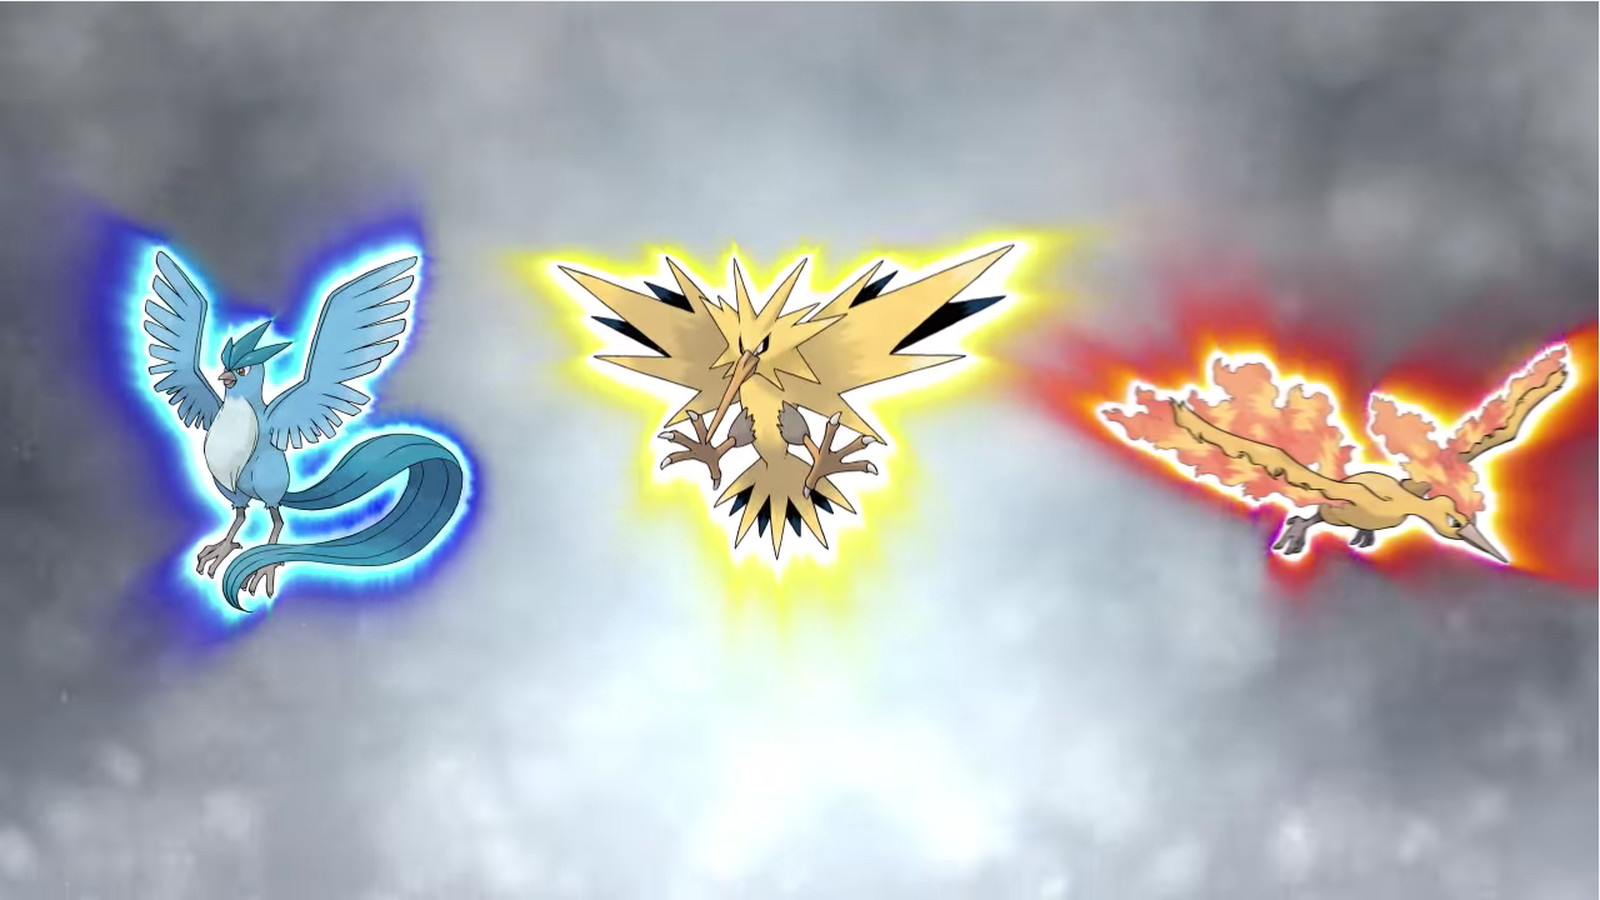 4 Legendary Birds Pokemon Images | Pokemon Images